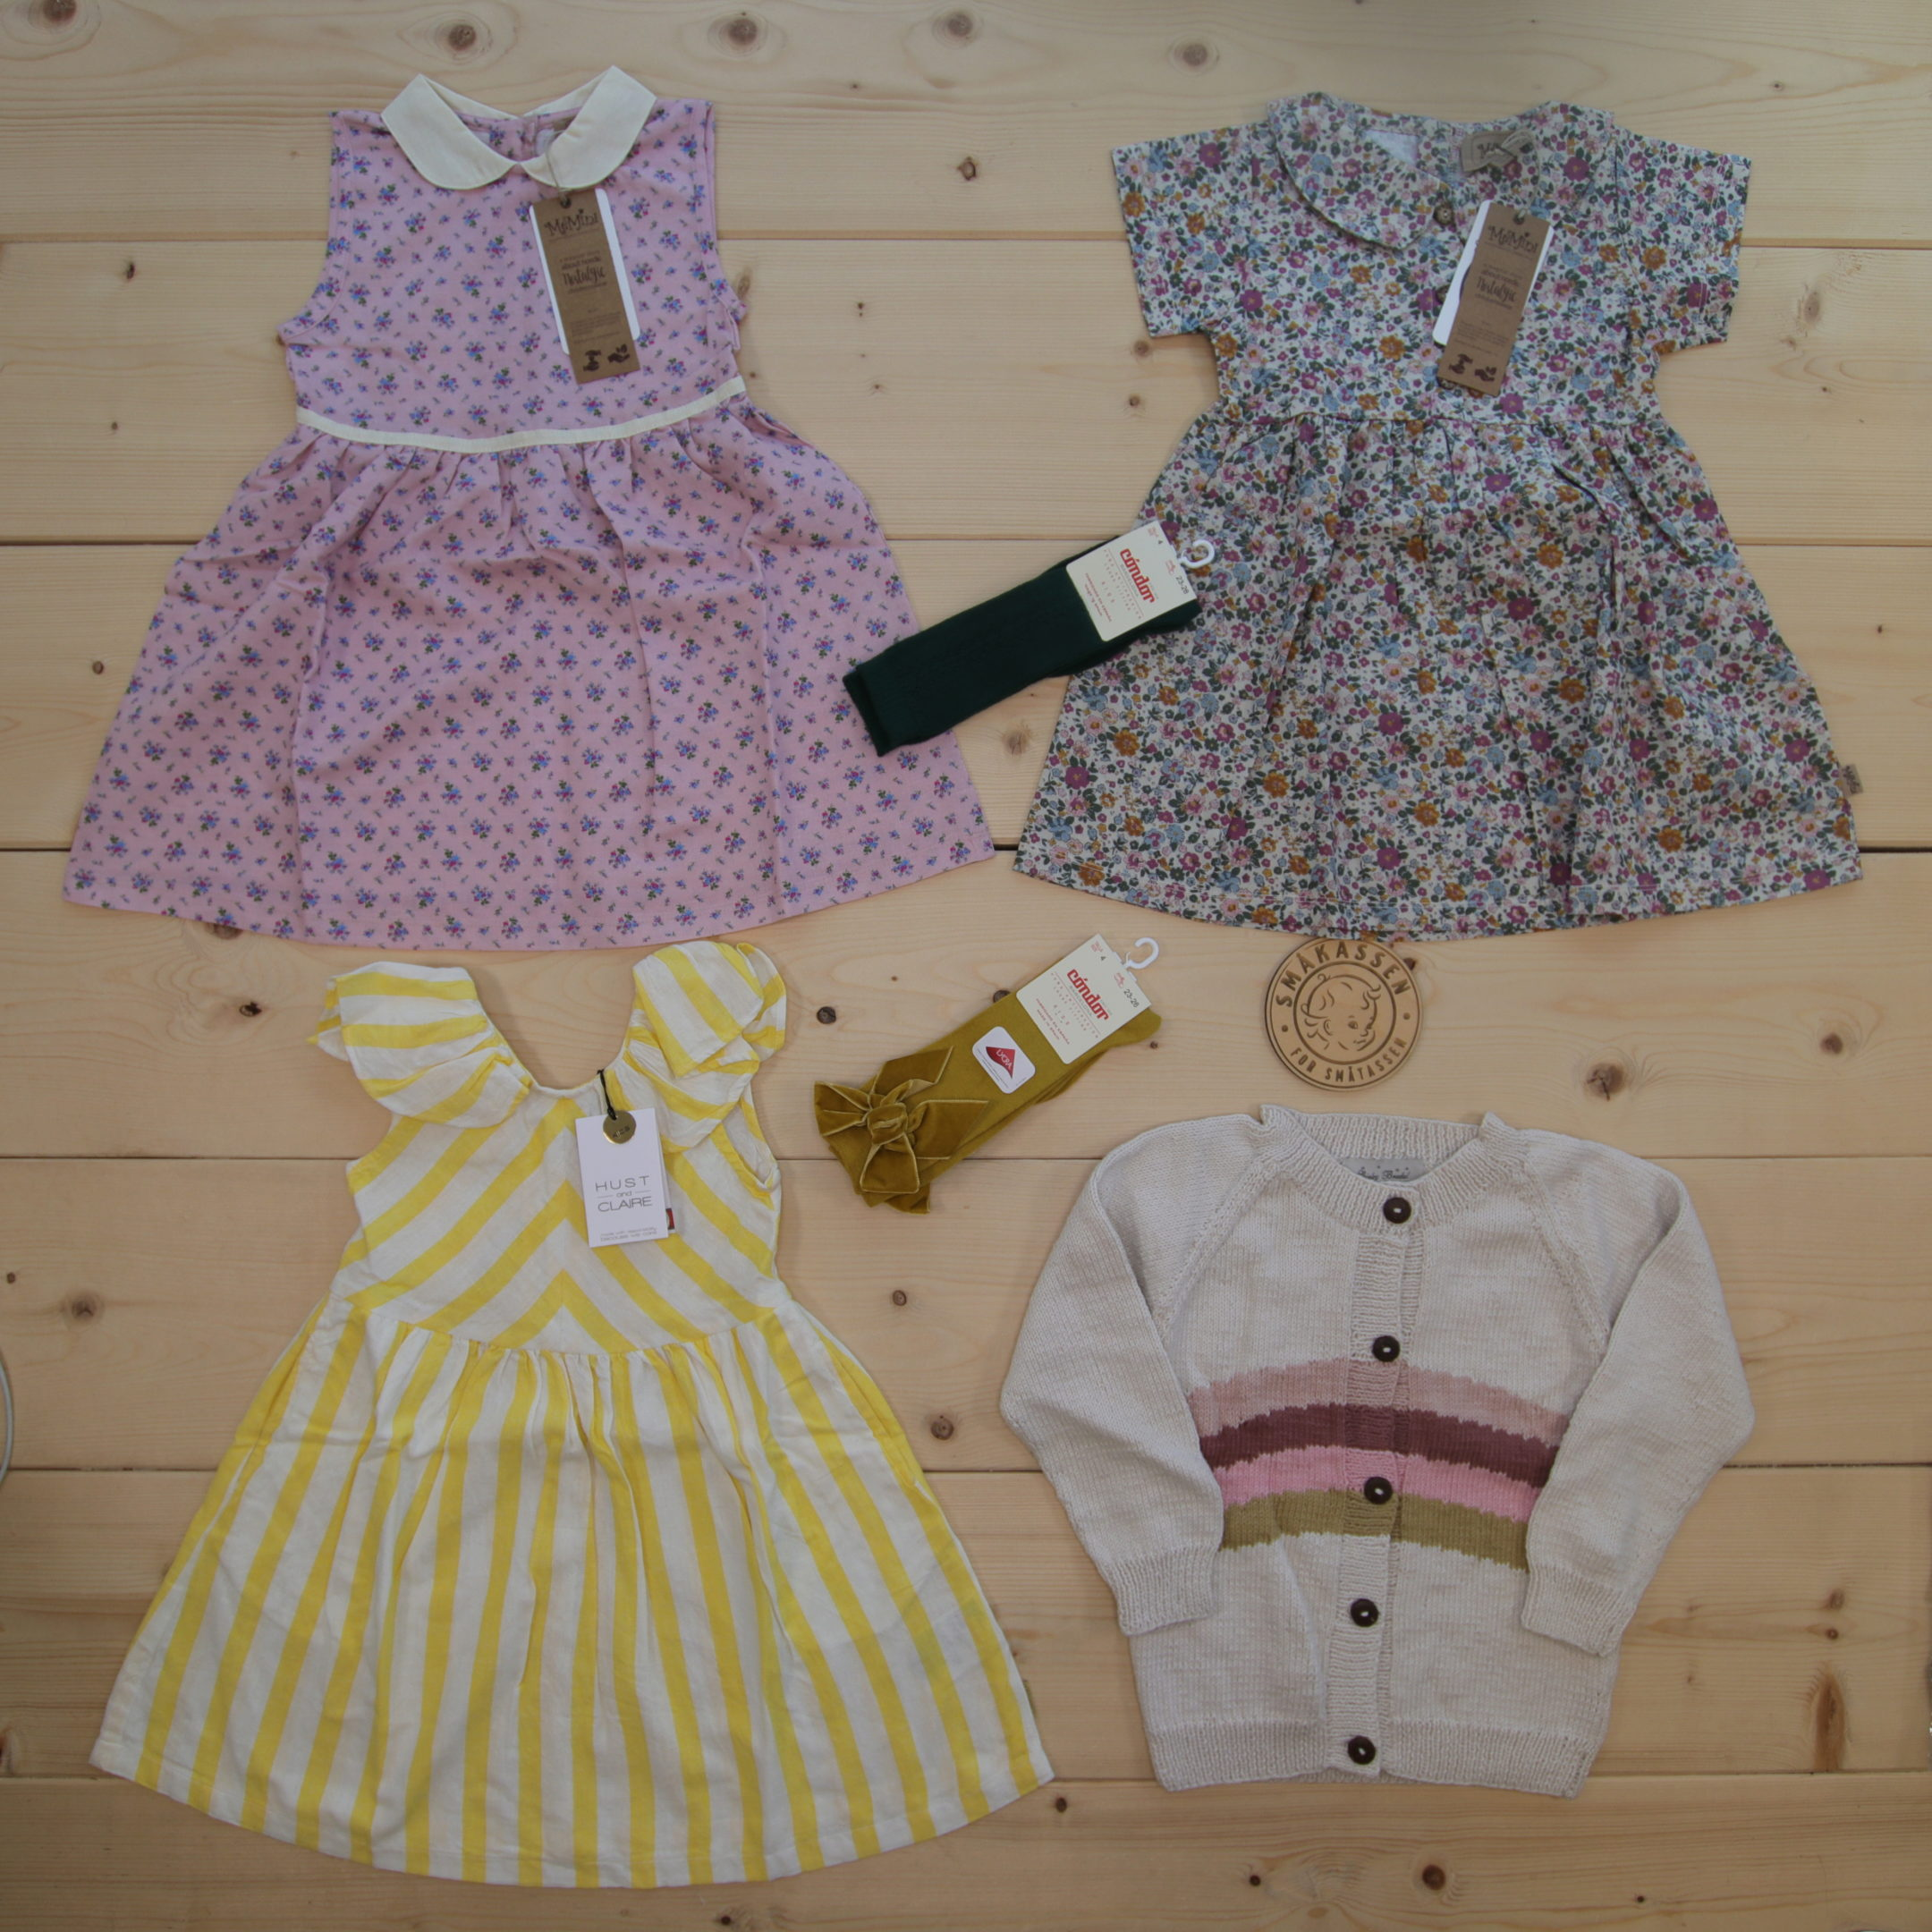 This is a 2500 NOK* Småkassen that we prepared for a girl  in the styles cute, cool, and colorful in size 104